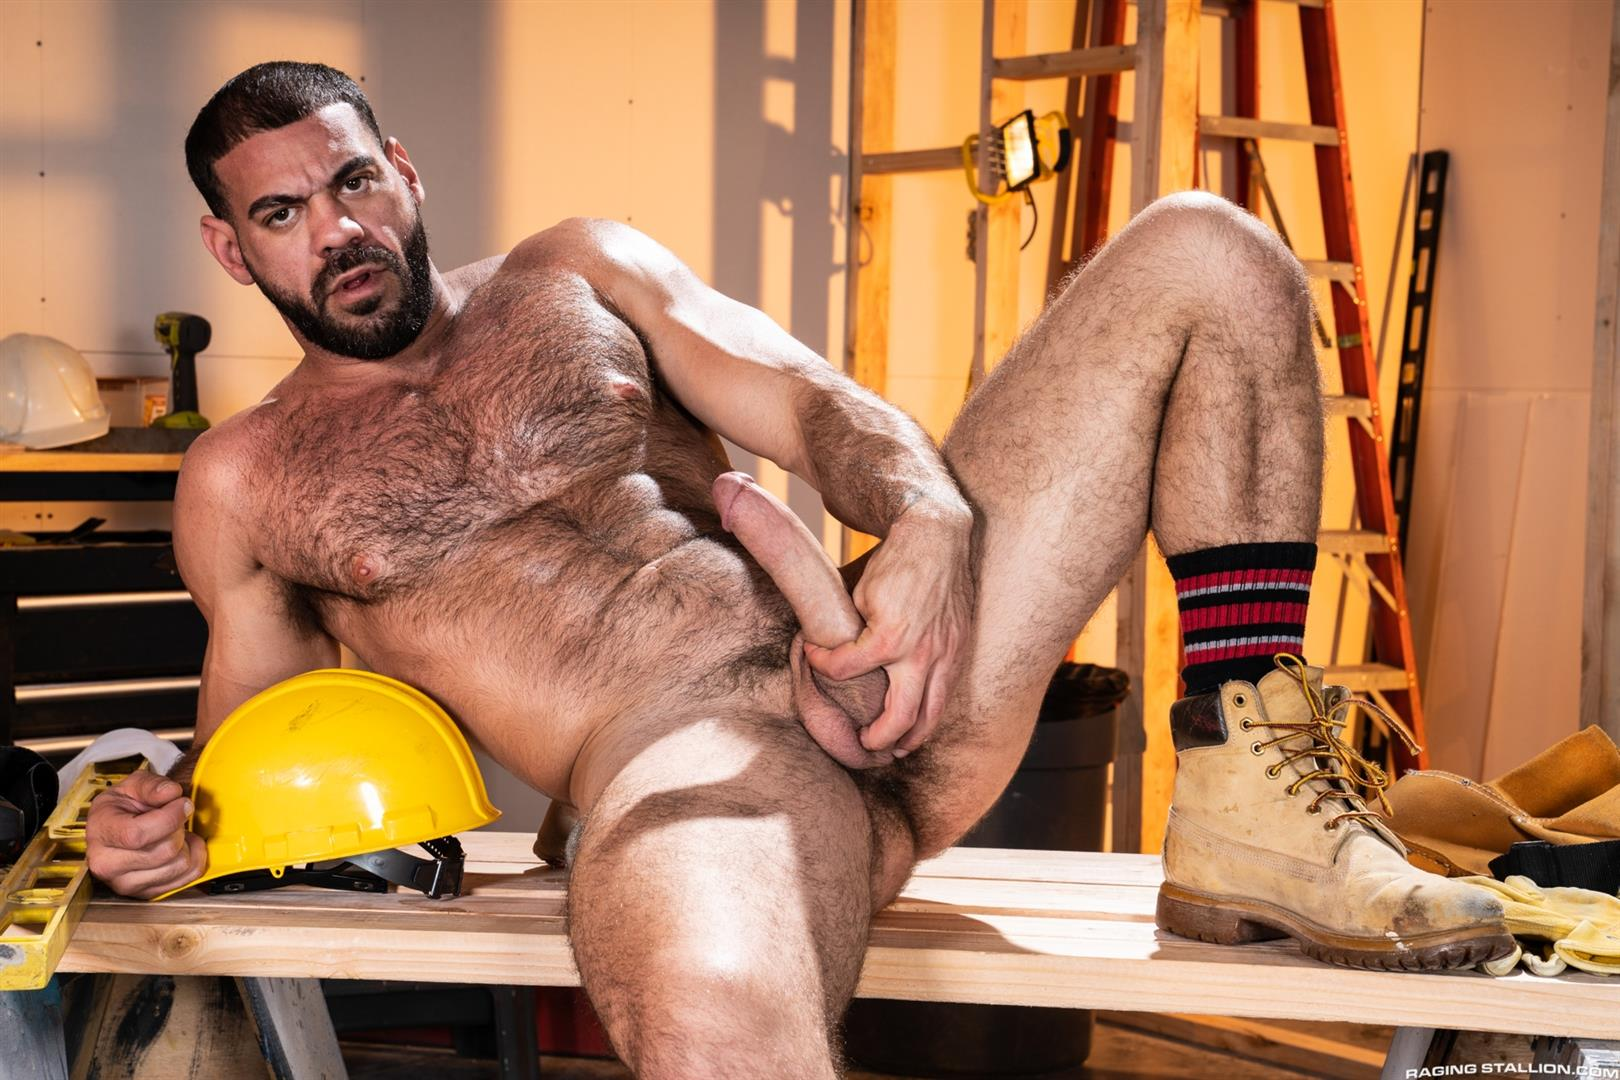 Raging-Stallion-Ricky-Larkin-and-Kurtis-Wolfe-and-Jaxx-Thanatos-Hairy-Muscle-Bareback-02 Hairy Muscle Hunks Ricky Larkin, Kurtis Wolfe and Jaxx Thanatos Bareback Fucking On The Job Site